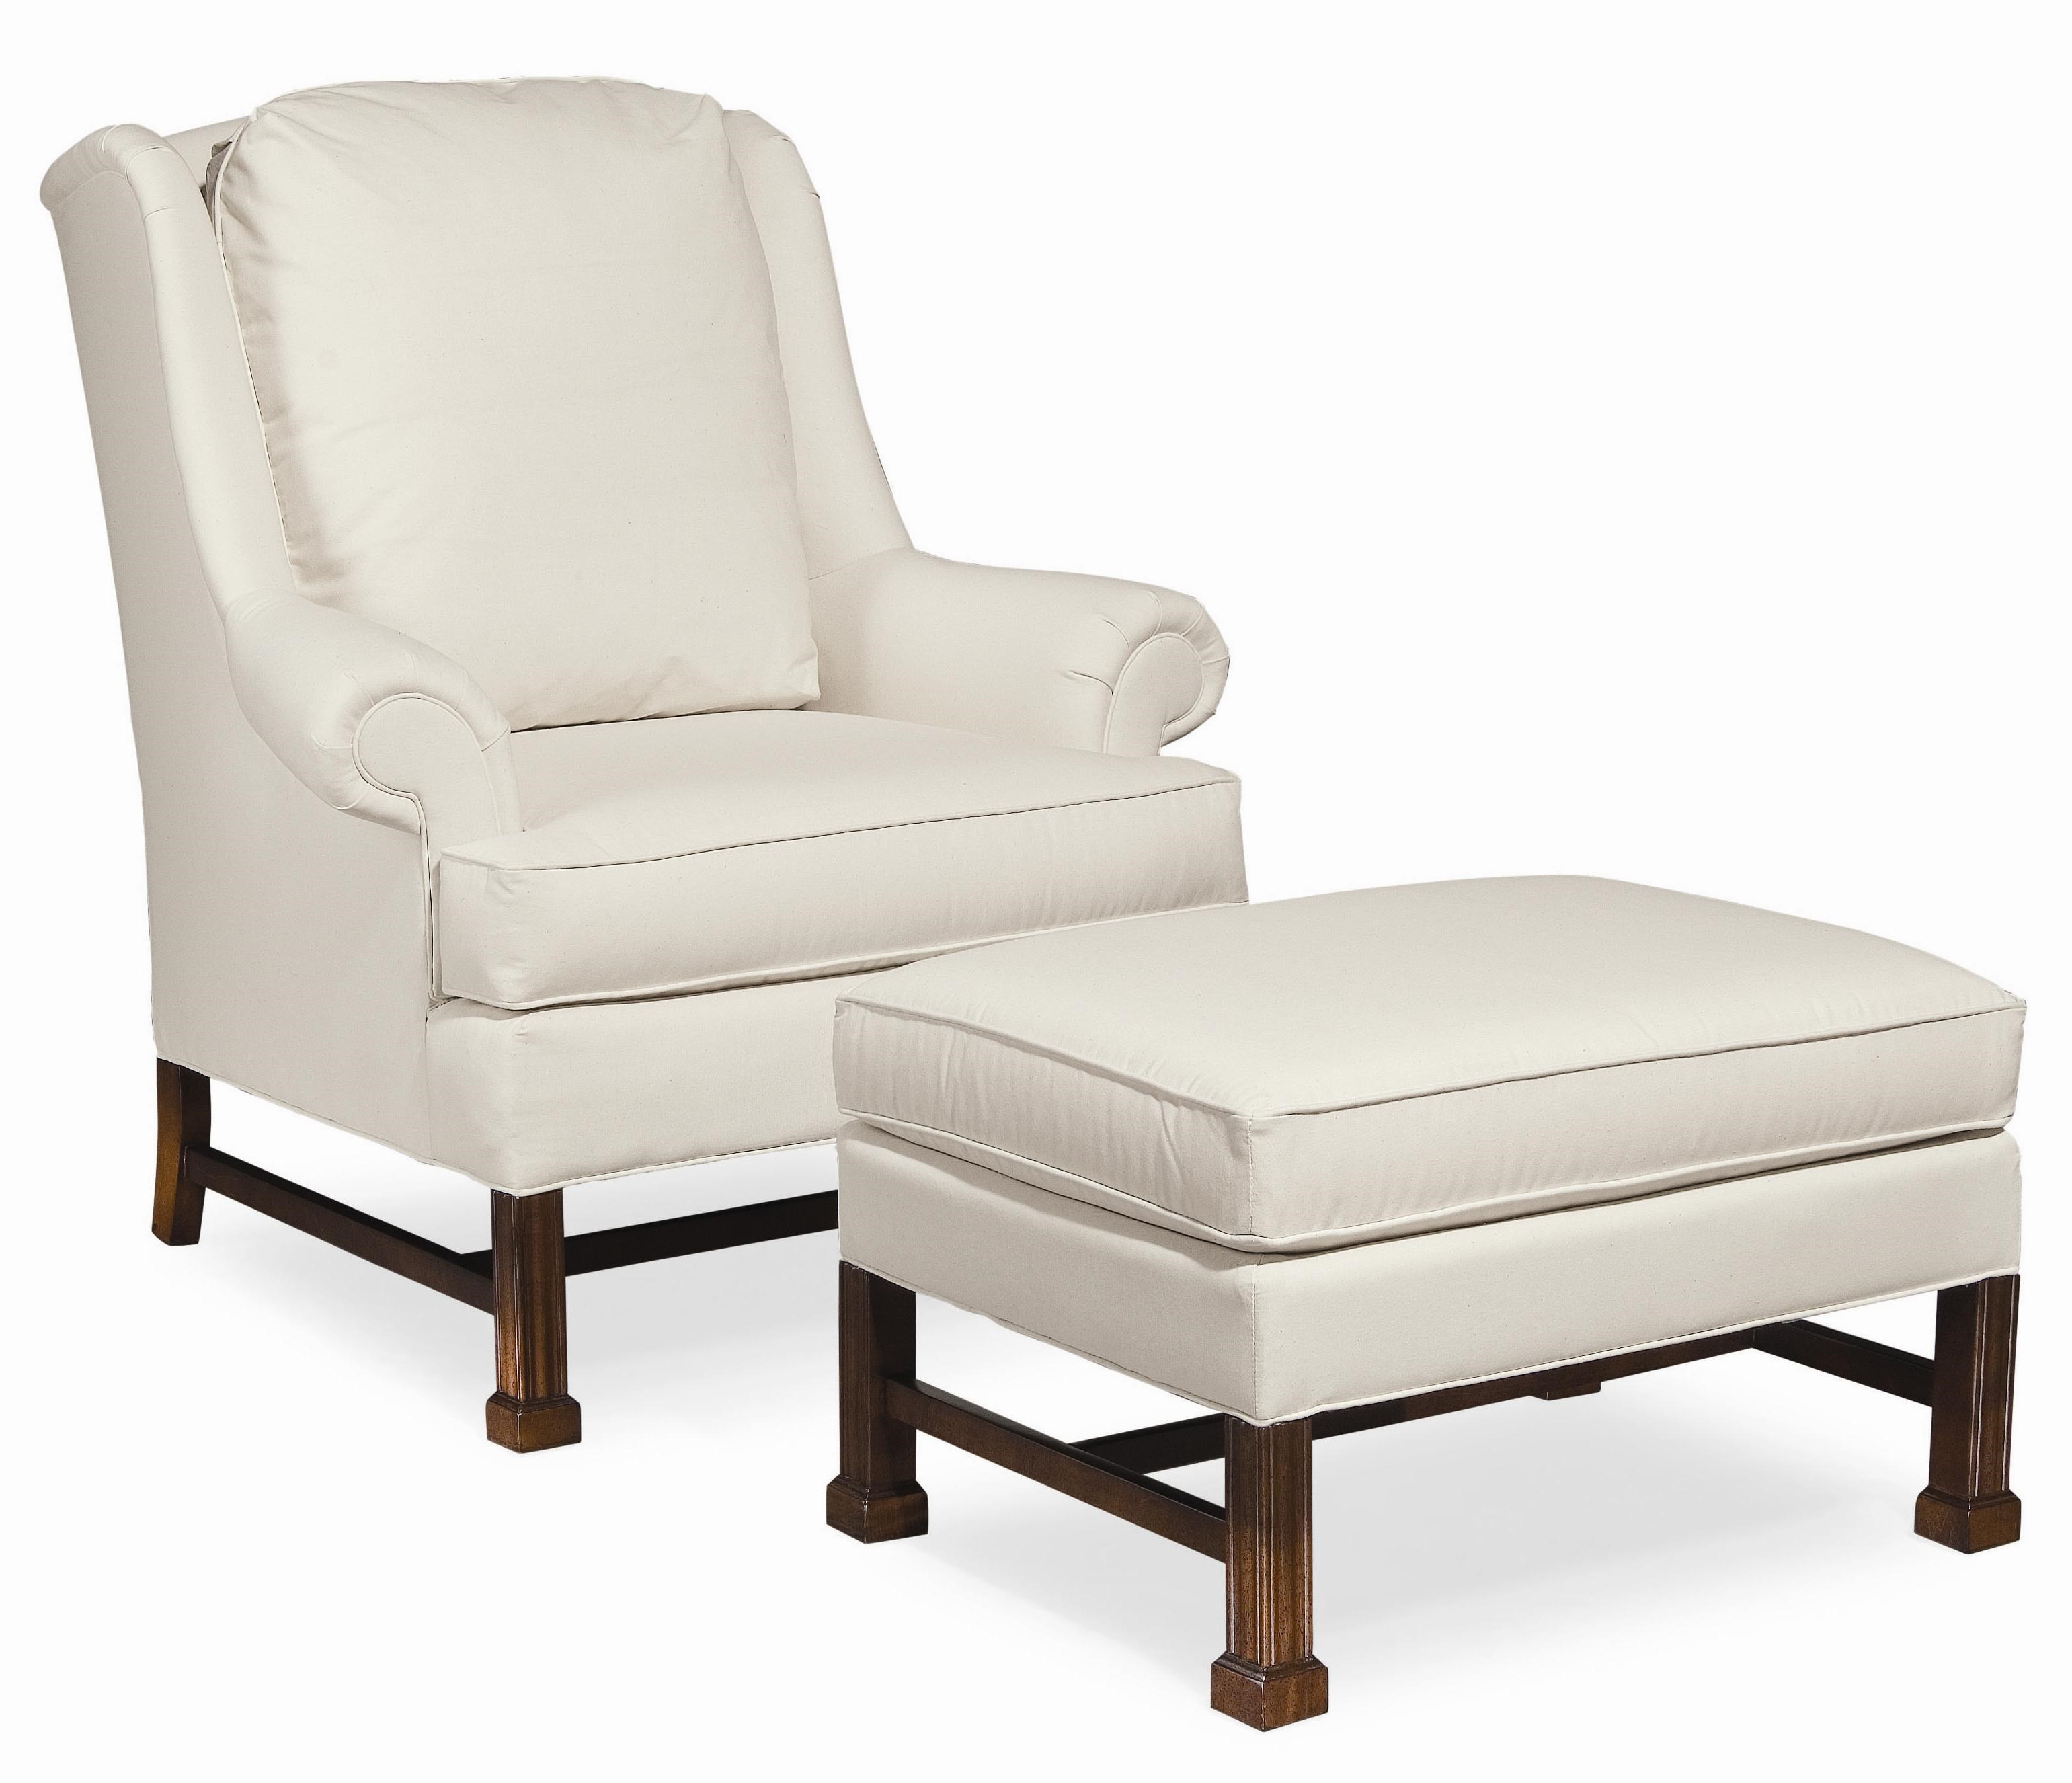 Delightful Thomasville® Upholstered Chairs And Ottomans Jamison Upholstered Chair With  Ottoman